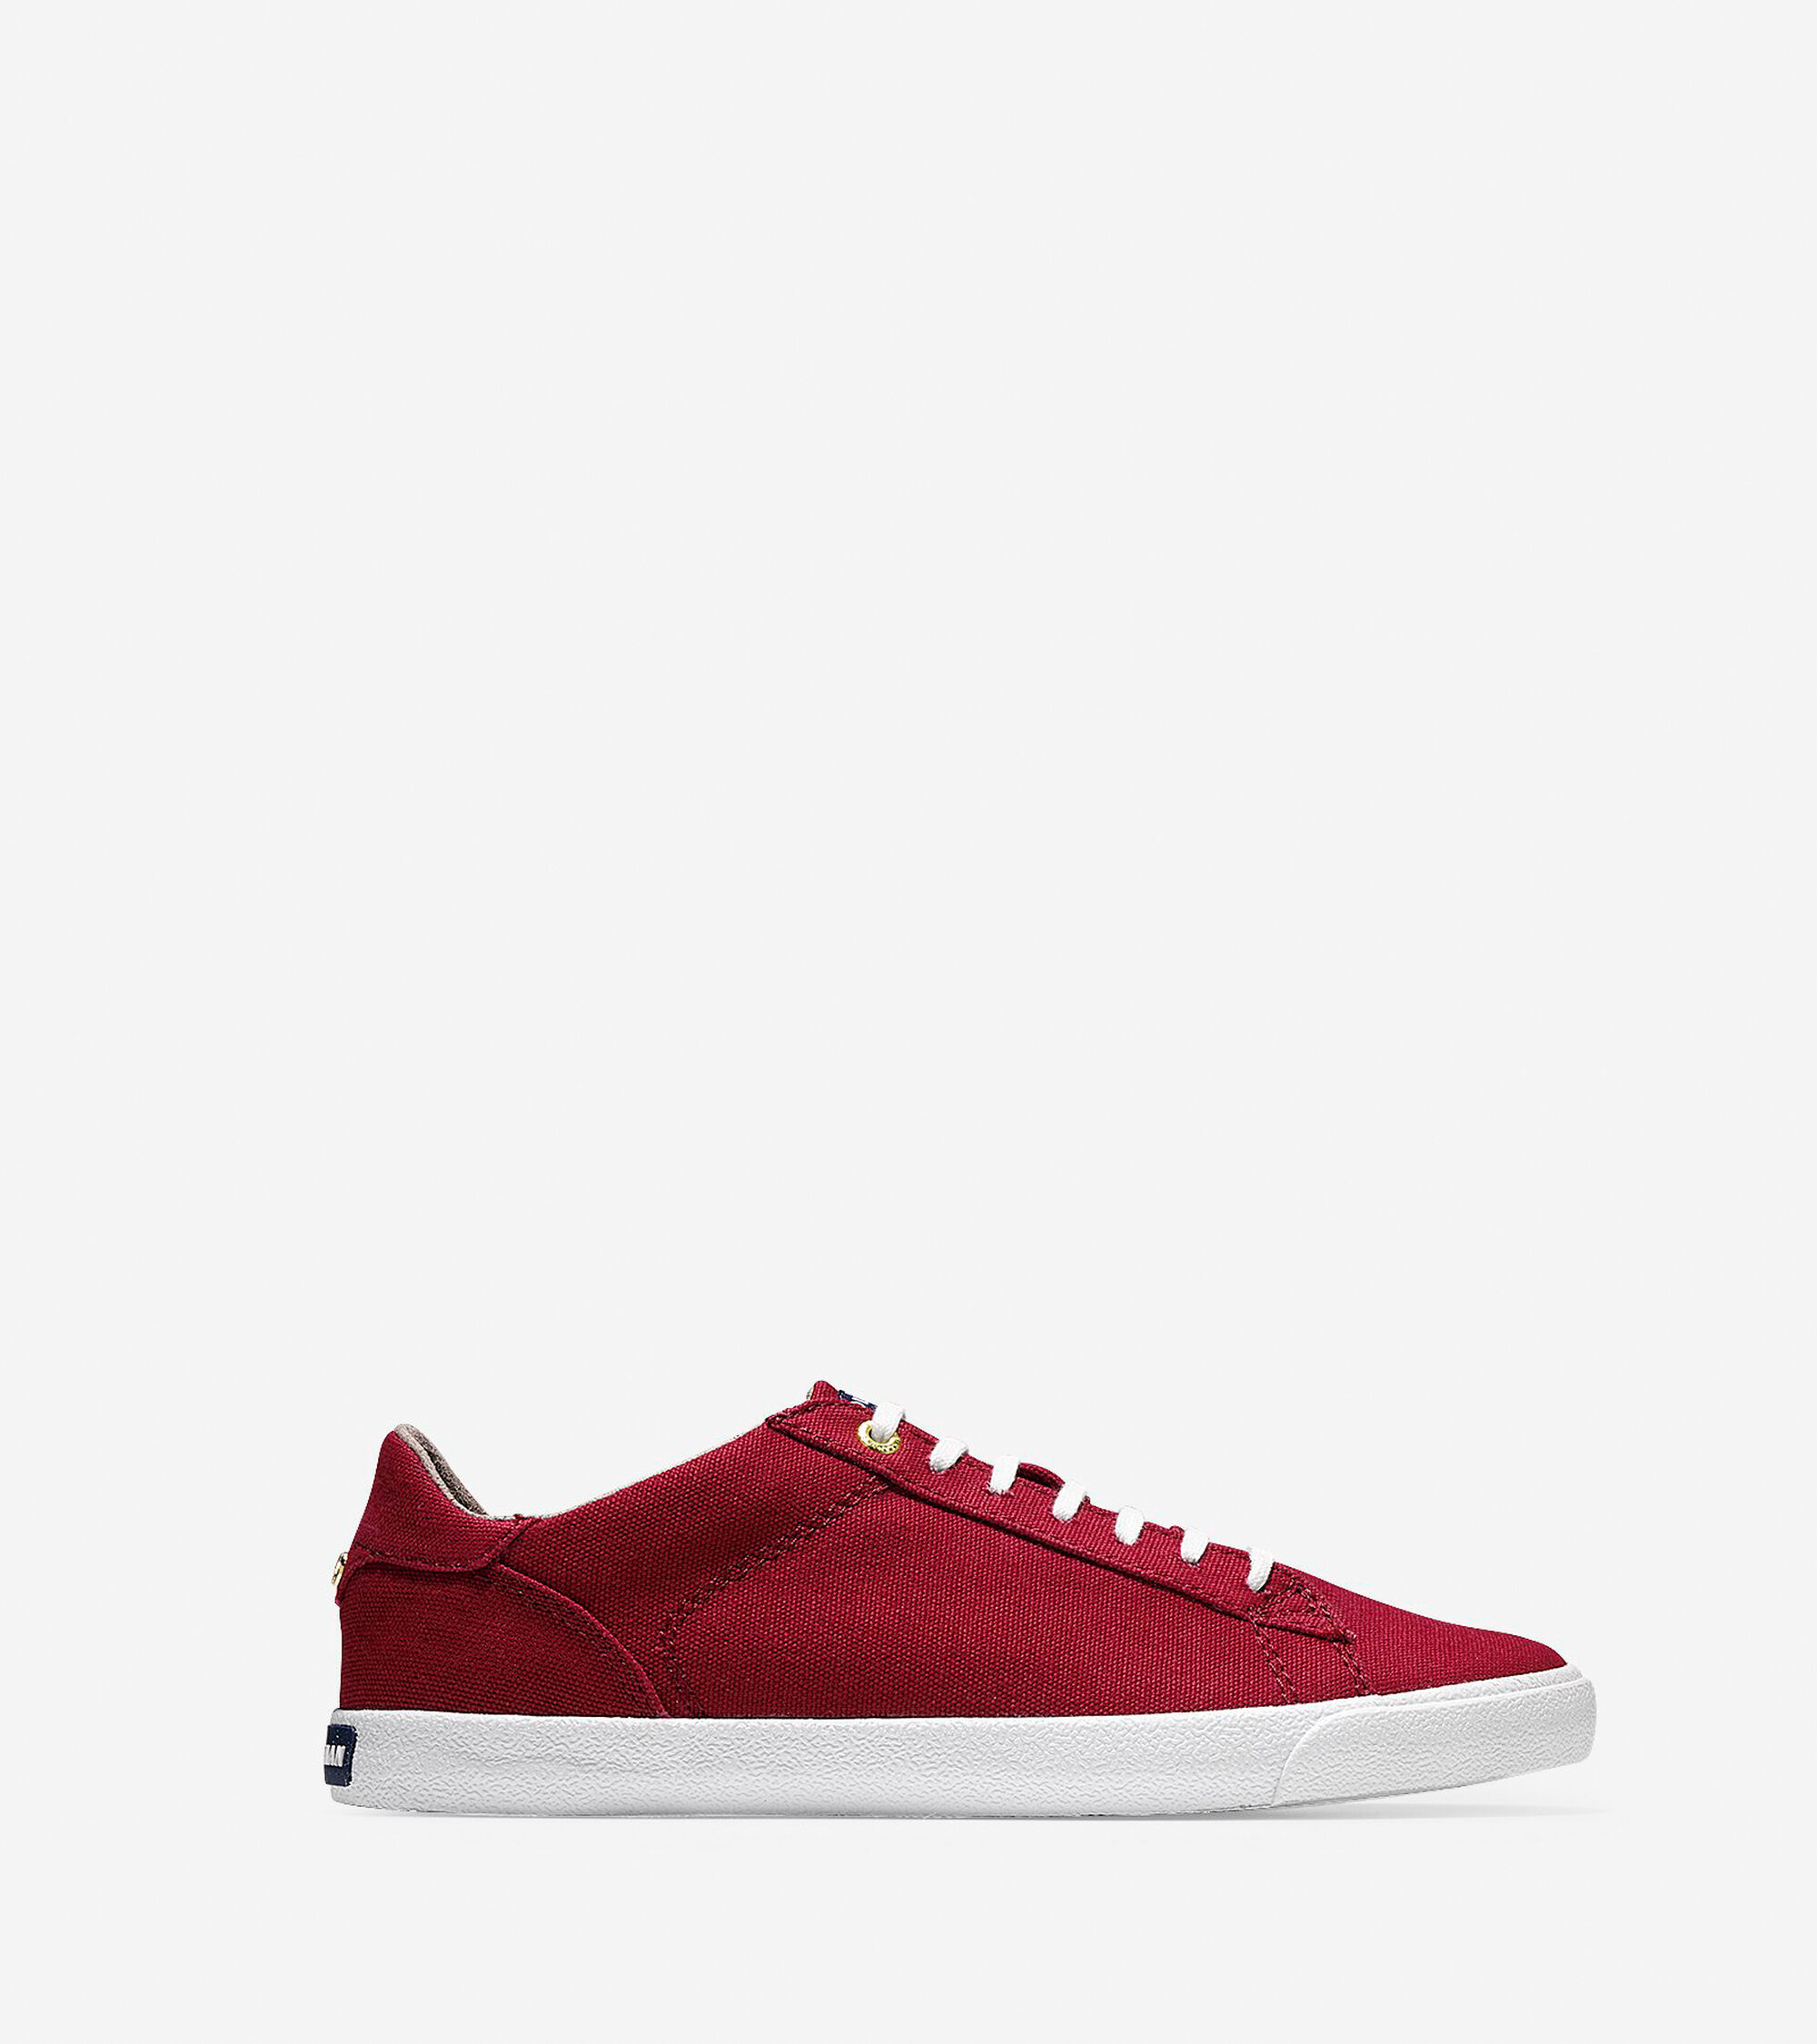 Sneakers > Trafton Club Court Canvas Sneaker